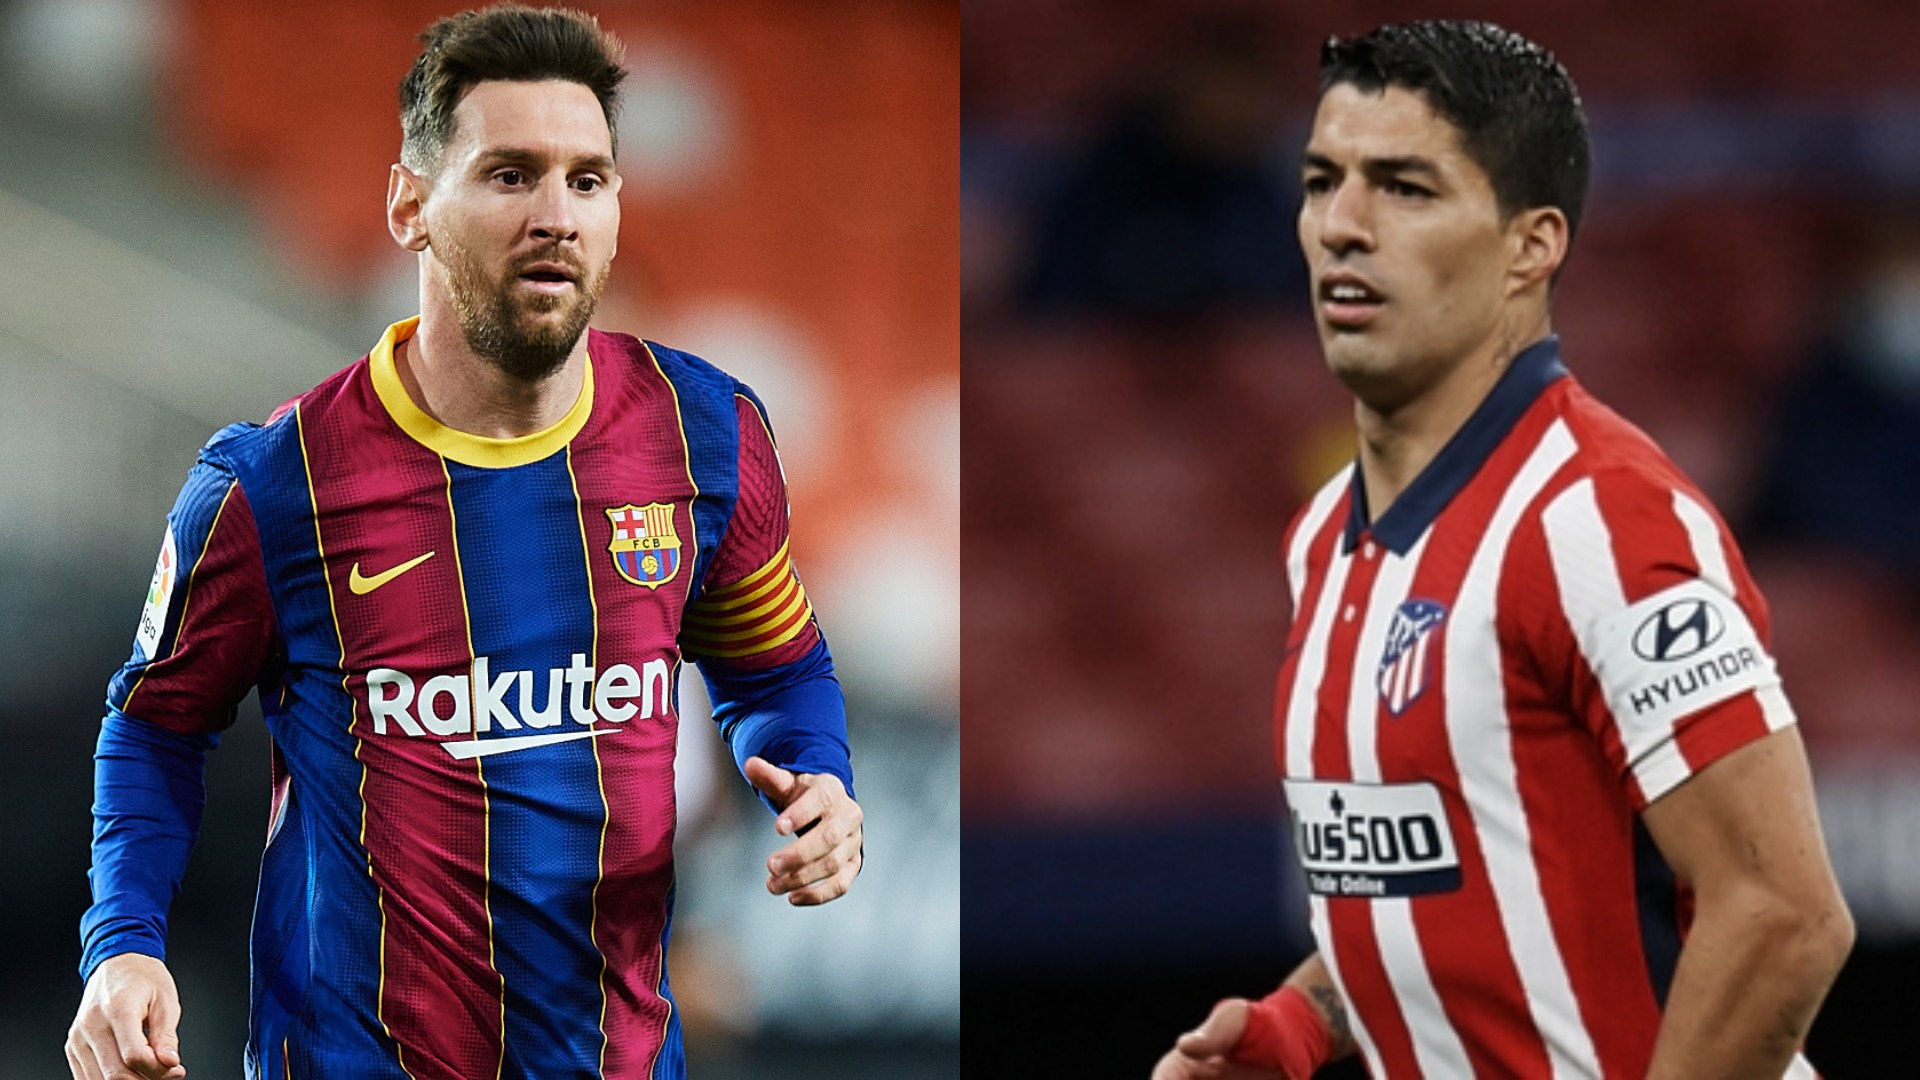 Barcelona v Atletico Madrid: A LaLiga title rematch seven years in the making